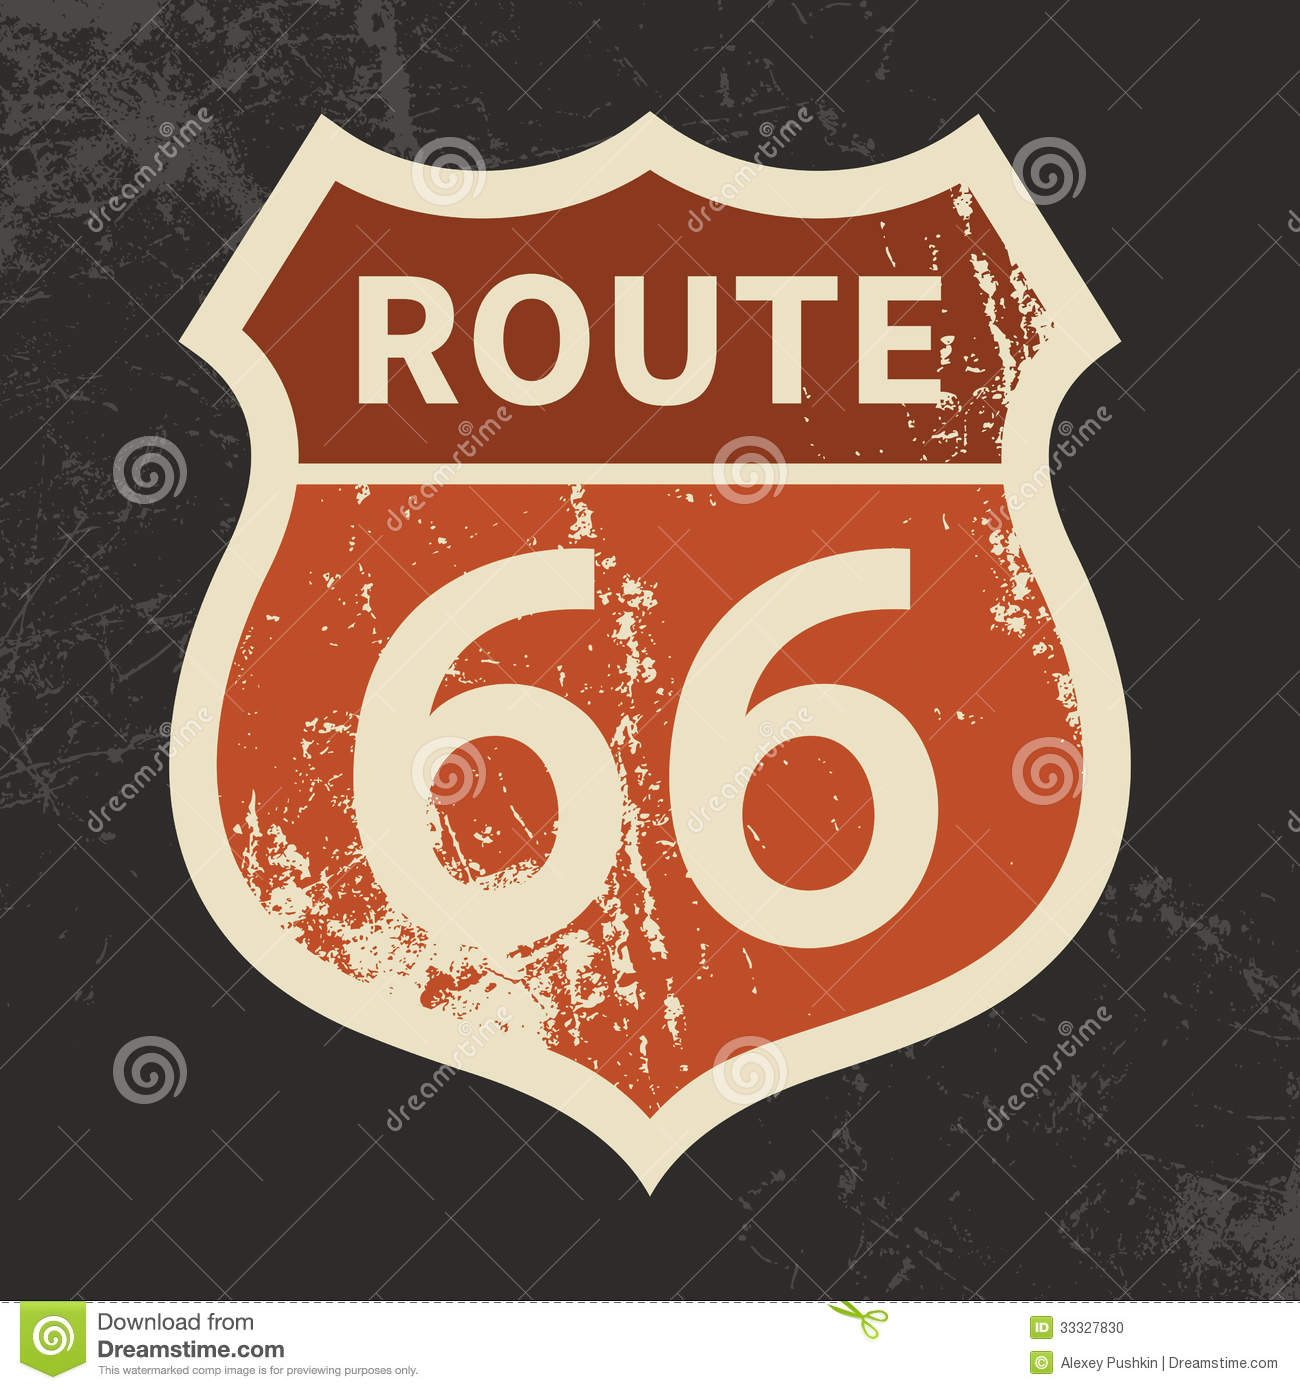 Route 66 Sign Stock Photo  Image 33327830. Railway Signs Of Stroke. Acne Due Signs. Baby Recovery Signs. 10 Year Signs. Ldl Signs. Symbols Signs Of Stroke. Library Hour Signs. Pie Signs